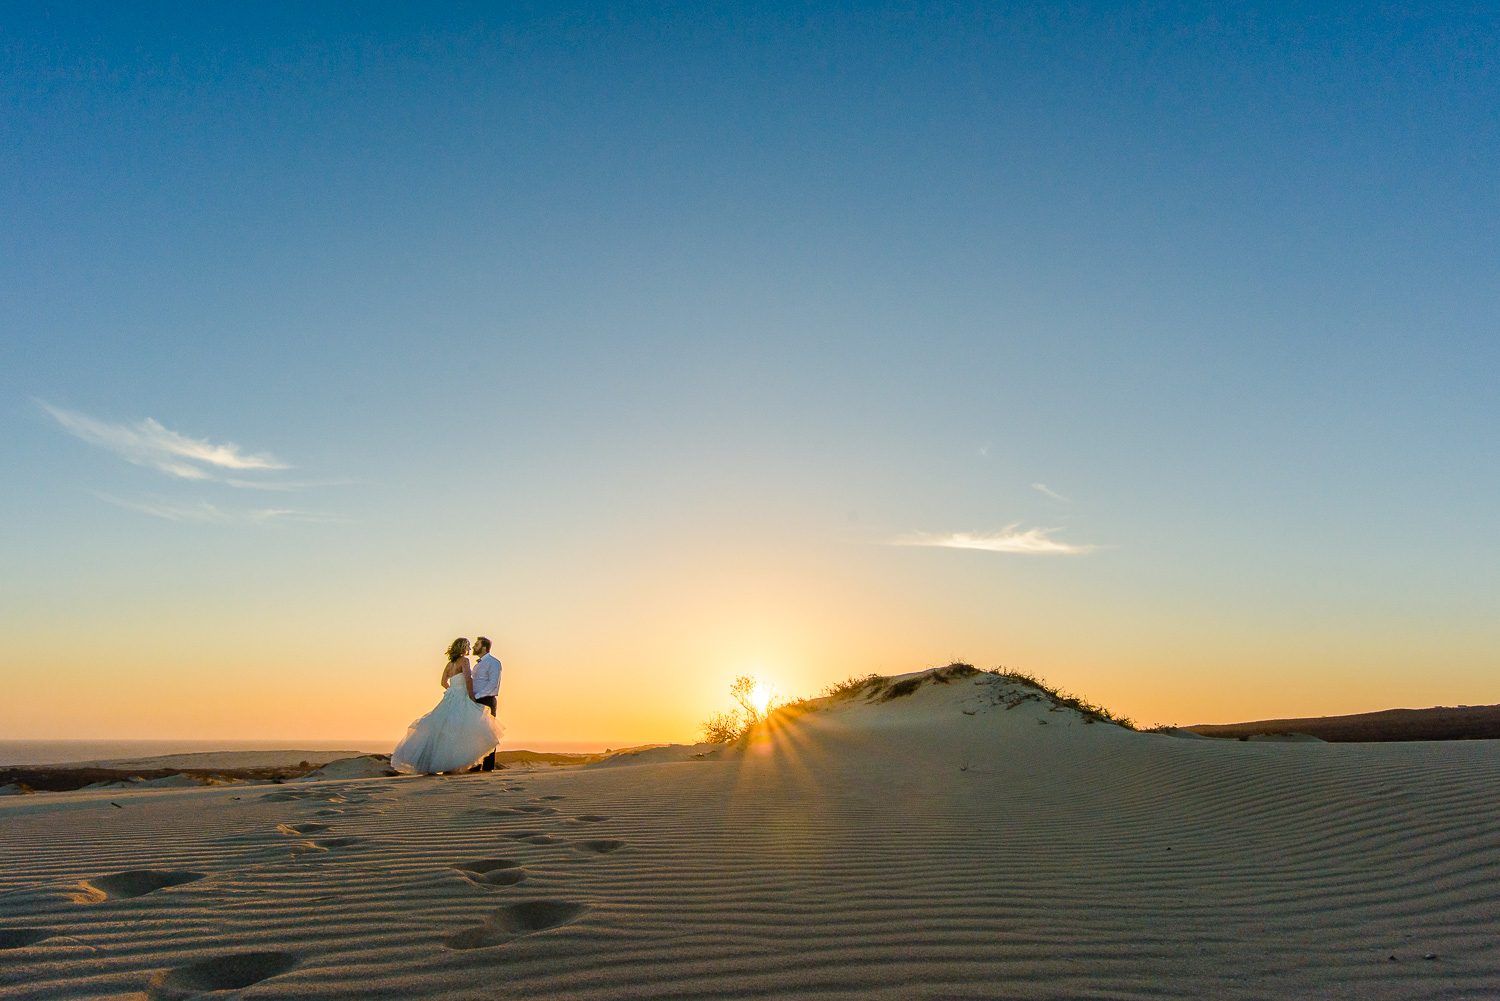 Bride and groom during their sunset photo session on their Cabo wedding. Kissing on the dunes with the sun behind. Photo by talented Cabo wedding photographer GVphotographer  https://www.gvphotographer.com/blog/creating-the-perfect-timeline-for-your-cabo-destination-wedding